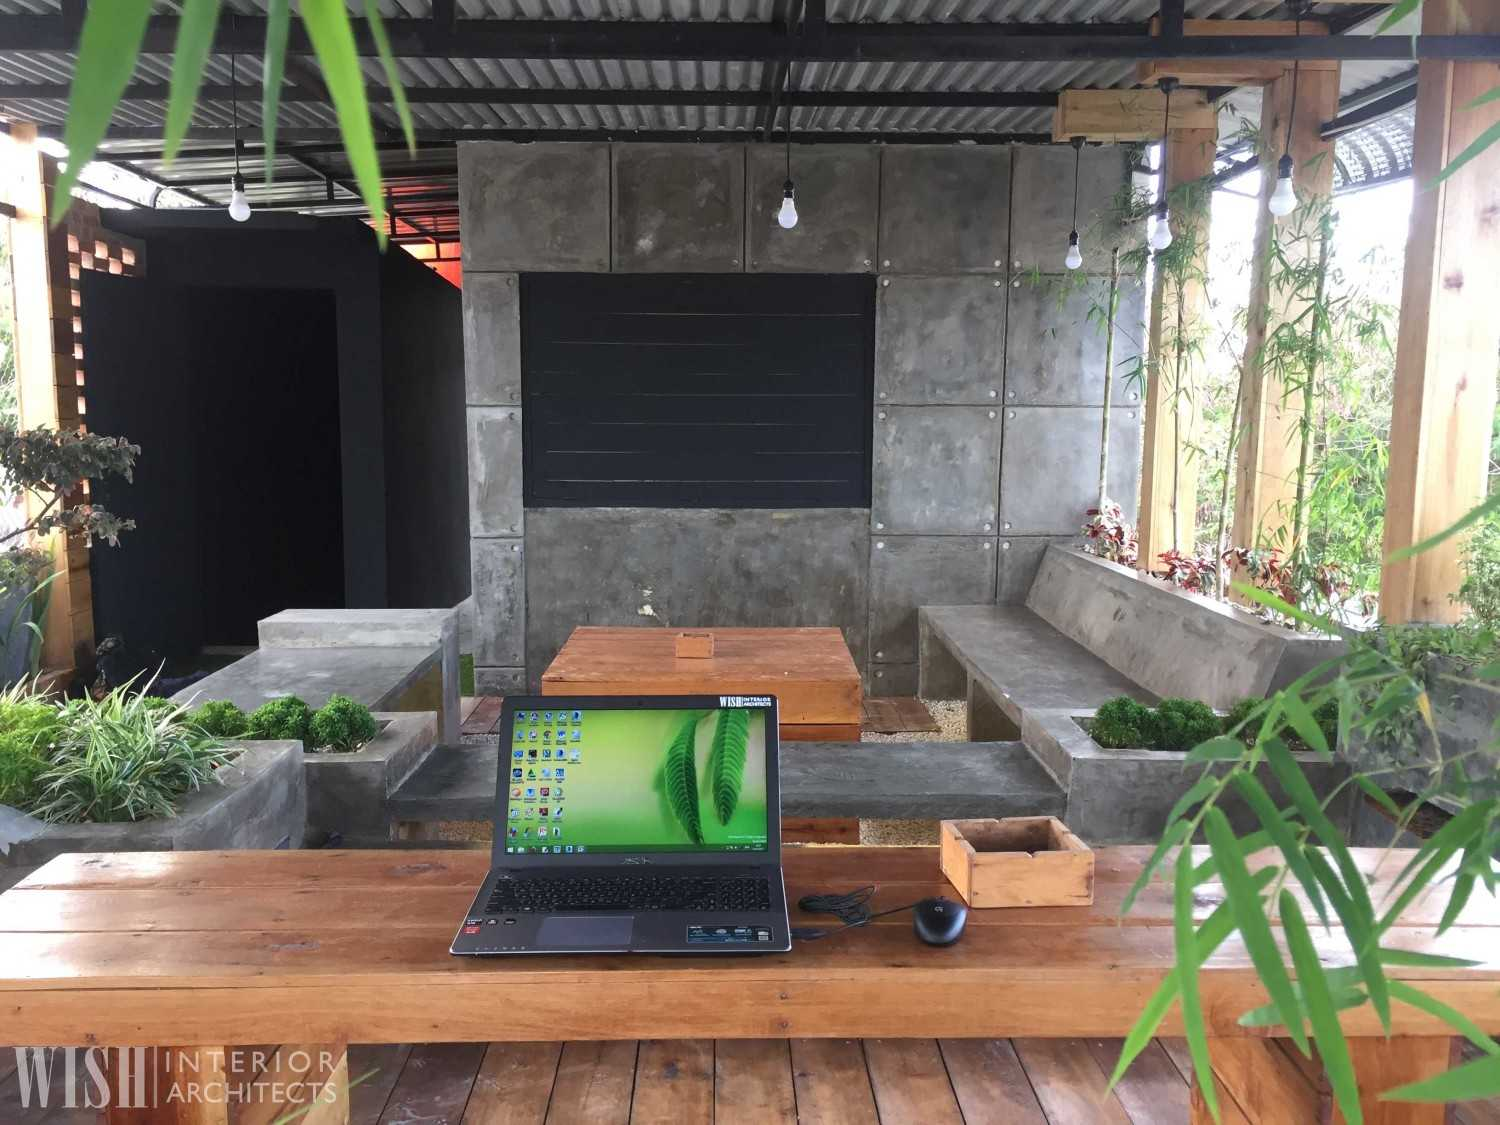 Wish Interior+Architects V Rooftop Garden Pekanbaru Pekanbaru Seating Area  28285